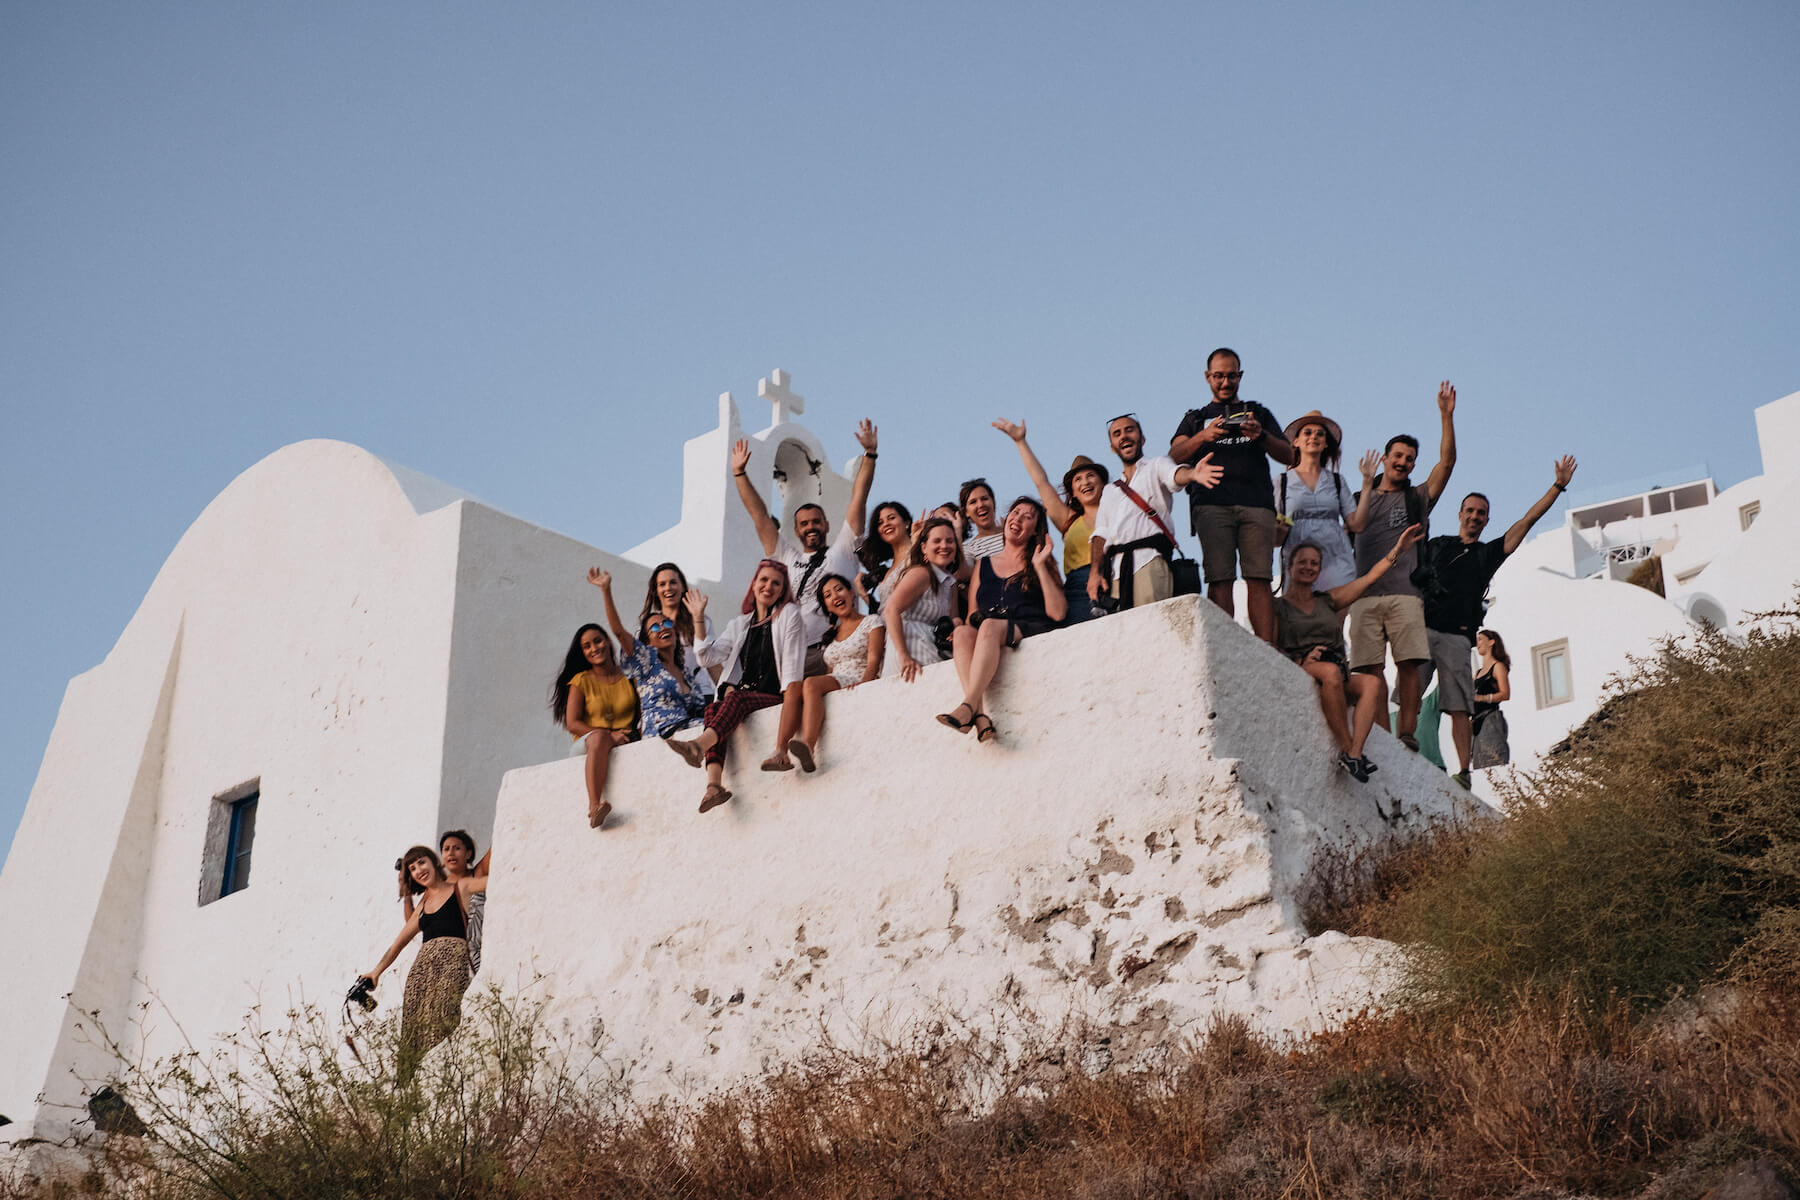 Photographers smiling and waving in a group in Santorini, Greece